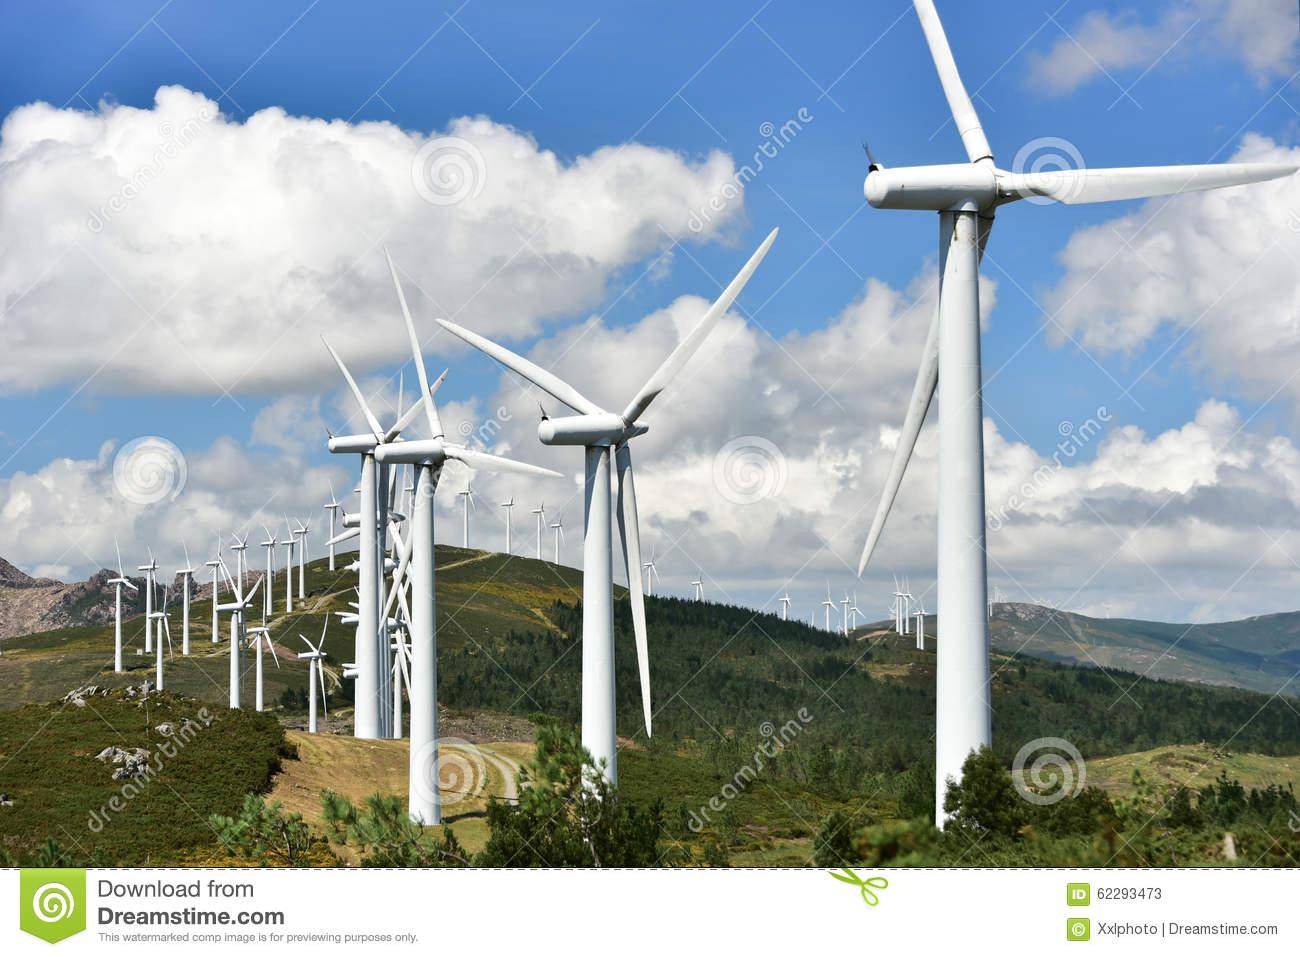 wind-power-plant-hilltop-windmill-powered-galicia-spain-62293473.jpg